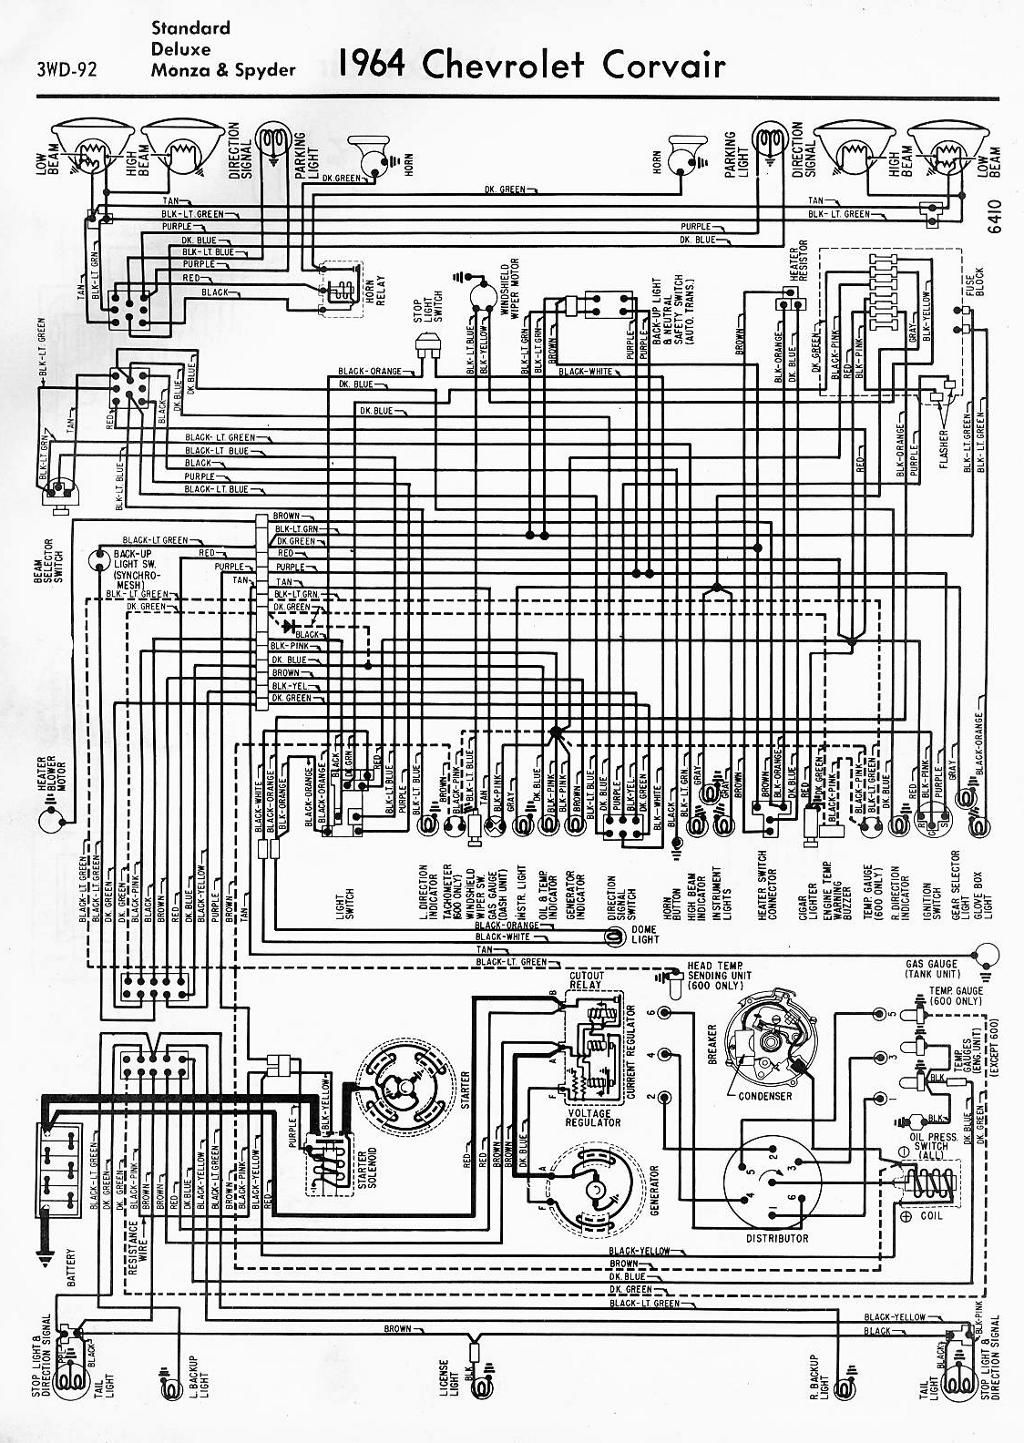 [DIAGRAM_38DE]  wiring diagram for 1964 chevrolet corvair standard deluxe monza spyder |  Diagram, Chevrolet corvair, Monza | Delco Radio Wiring Diagram 1964 |  | Pinterest